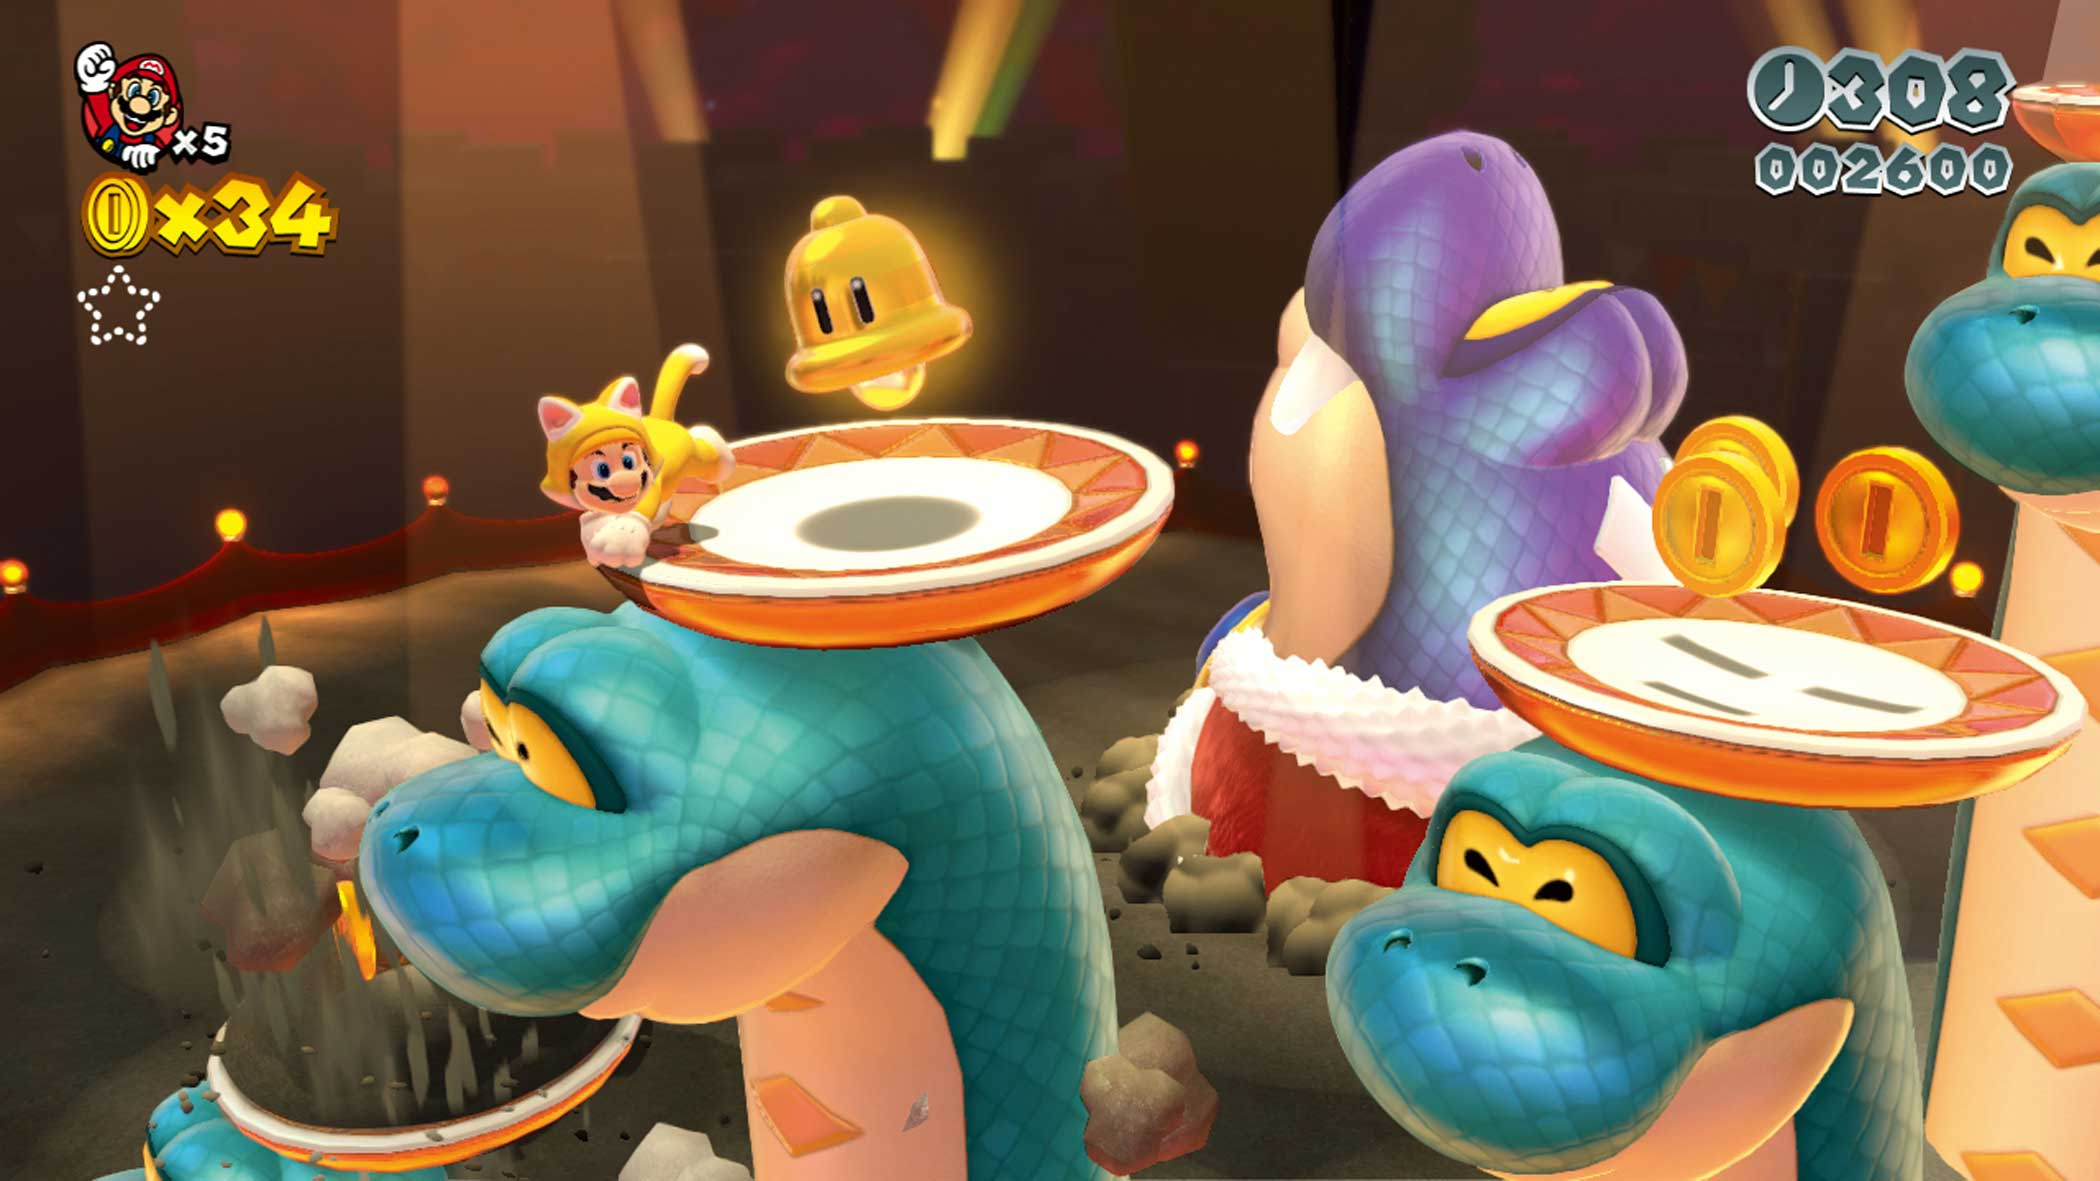 2013: Super Mario 3D World                                                              Extending ideas introduced in Super Mario 3D Land two years earlier, Super Mario 3D World combines 2D and 3D levels with the option to play as Mario, Luigi, Princess Peach and Toad (each with unique abilities, essential to obtain all of the games hidden items).